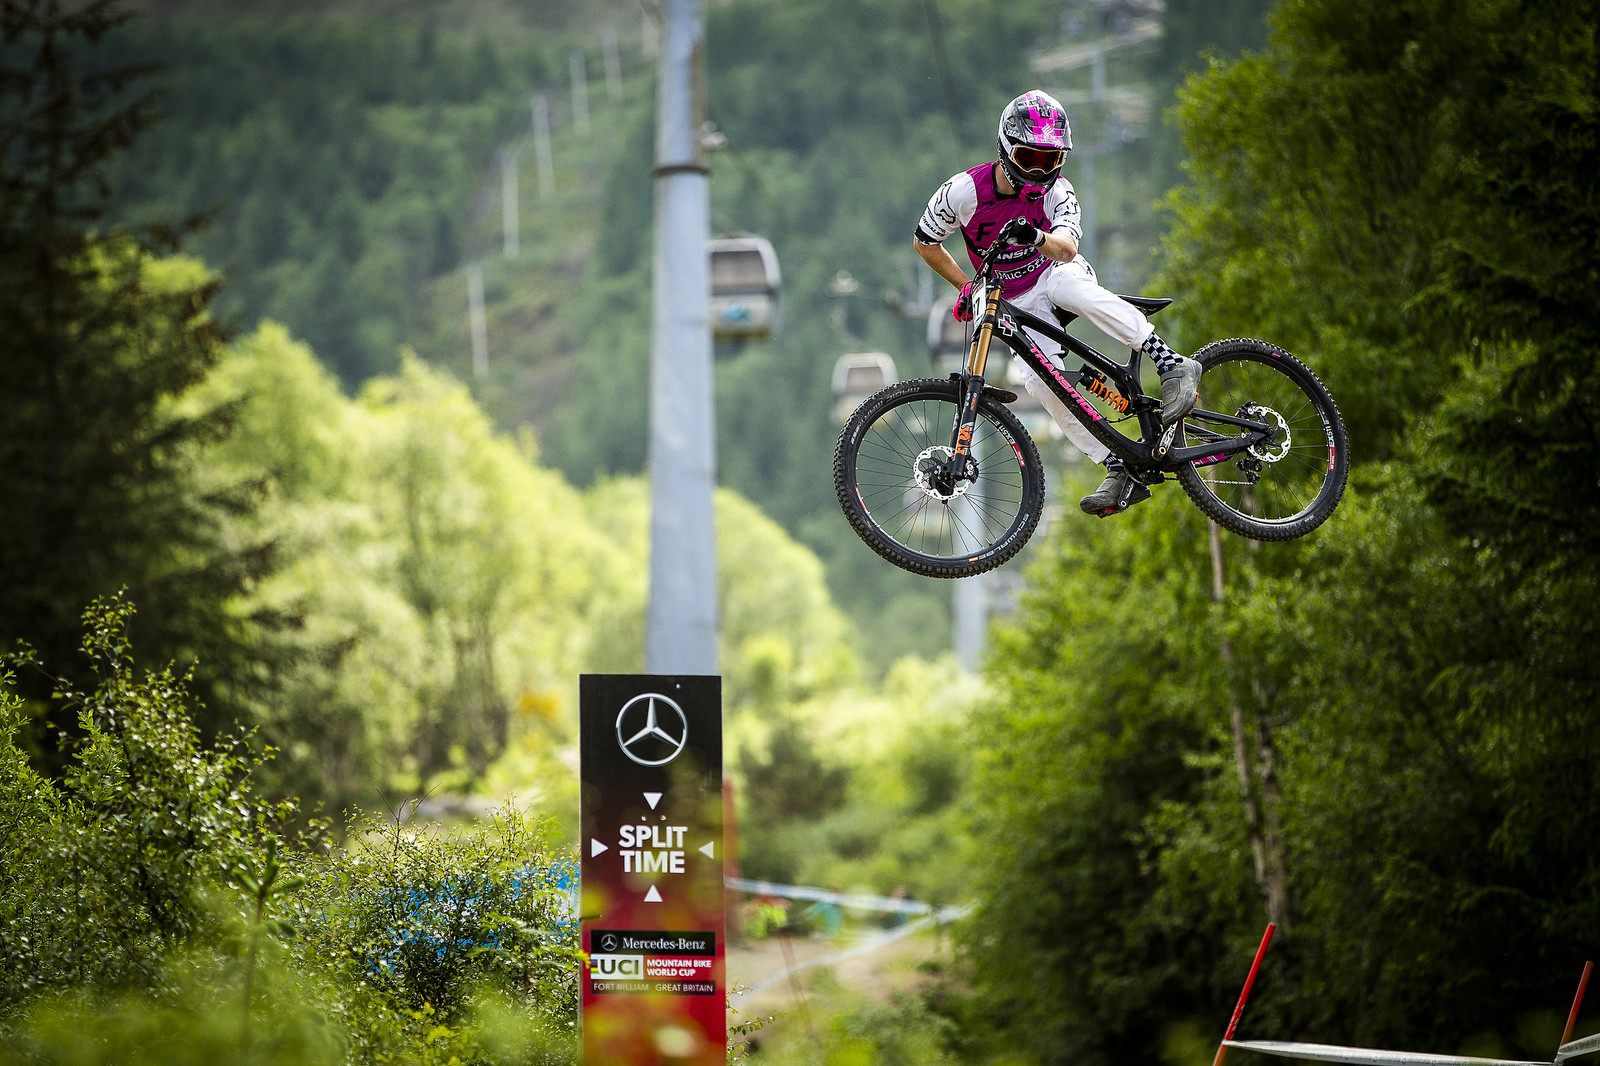 Kaos - Fort William World Cup DH Whips - Mountain Biking Pictures - Vital MTB